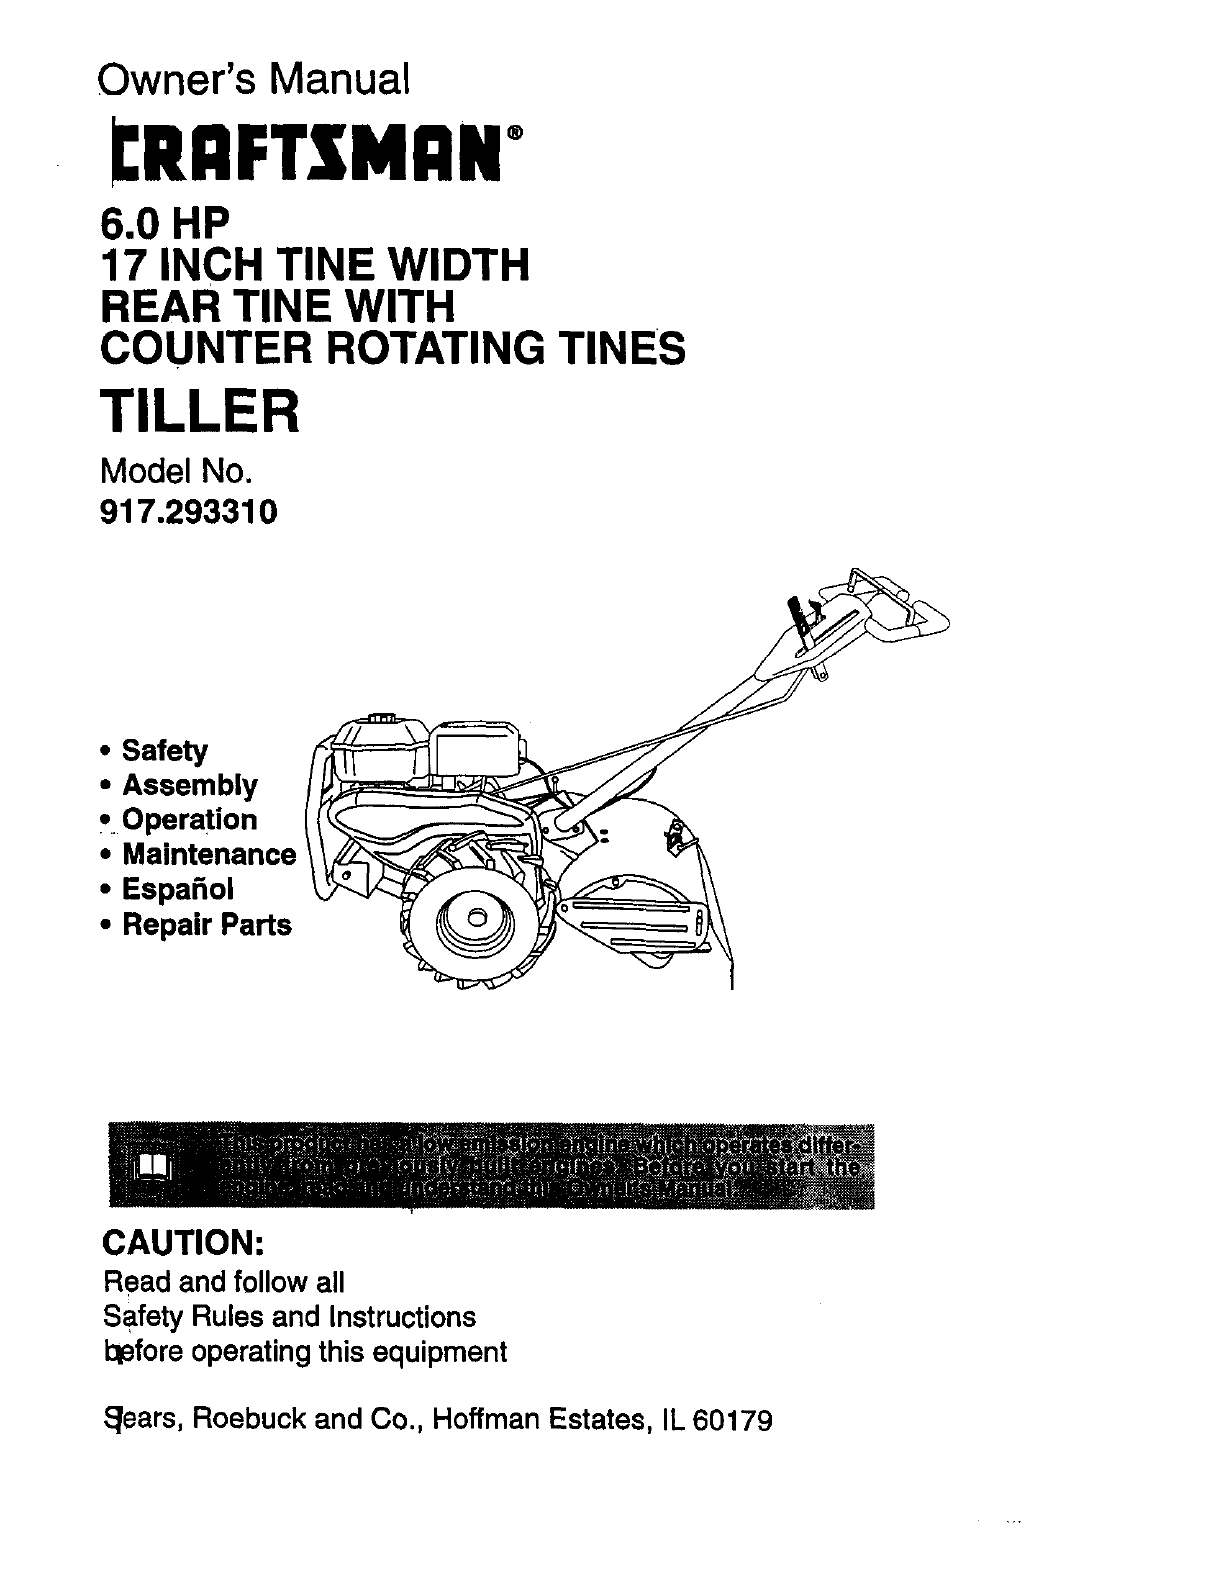 craftsman tiller 917 29331 user guide manualsonline com rh lawnandgarden manualsonline com Craftsman Radial Saw Owners Manual Craftsman Tiller Parts Manual